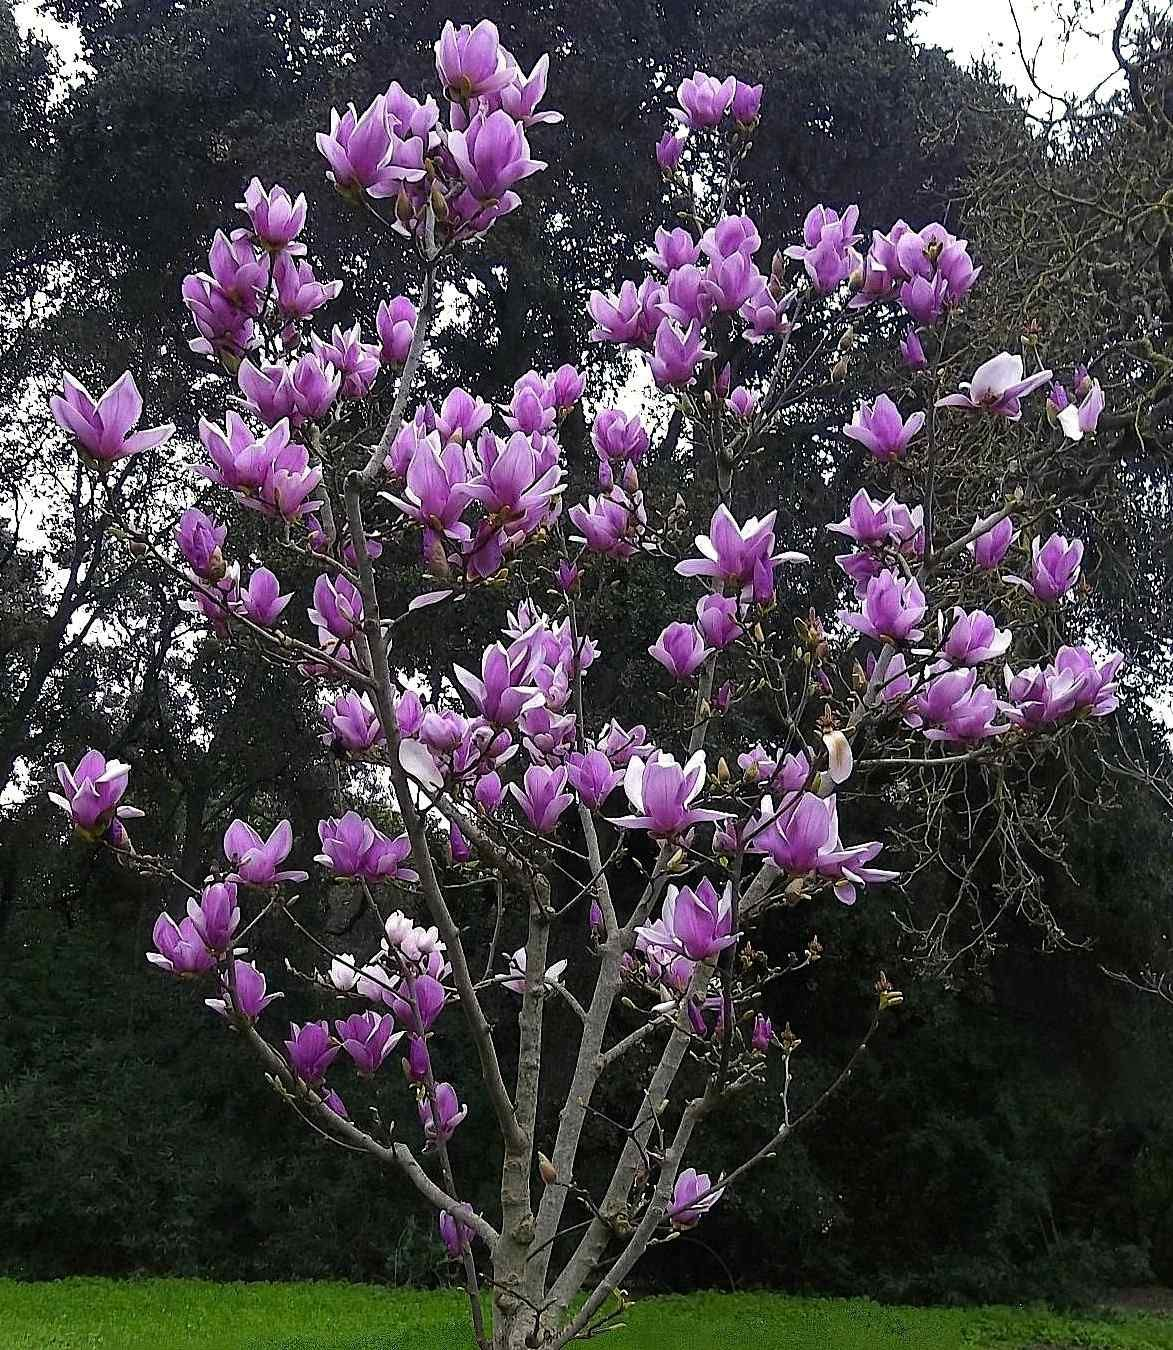 The Showy Magnolia Soulangiana Tree Commonly Called The Saucer Magnolia Tree Is One Of The Approximatel Magnolia Tree Landscaping Magnolia Trees Garden Trees